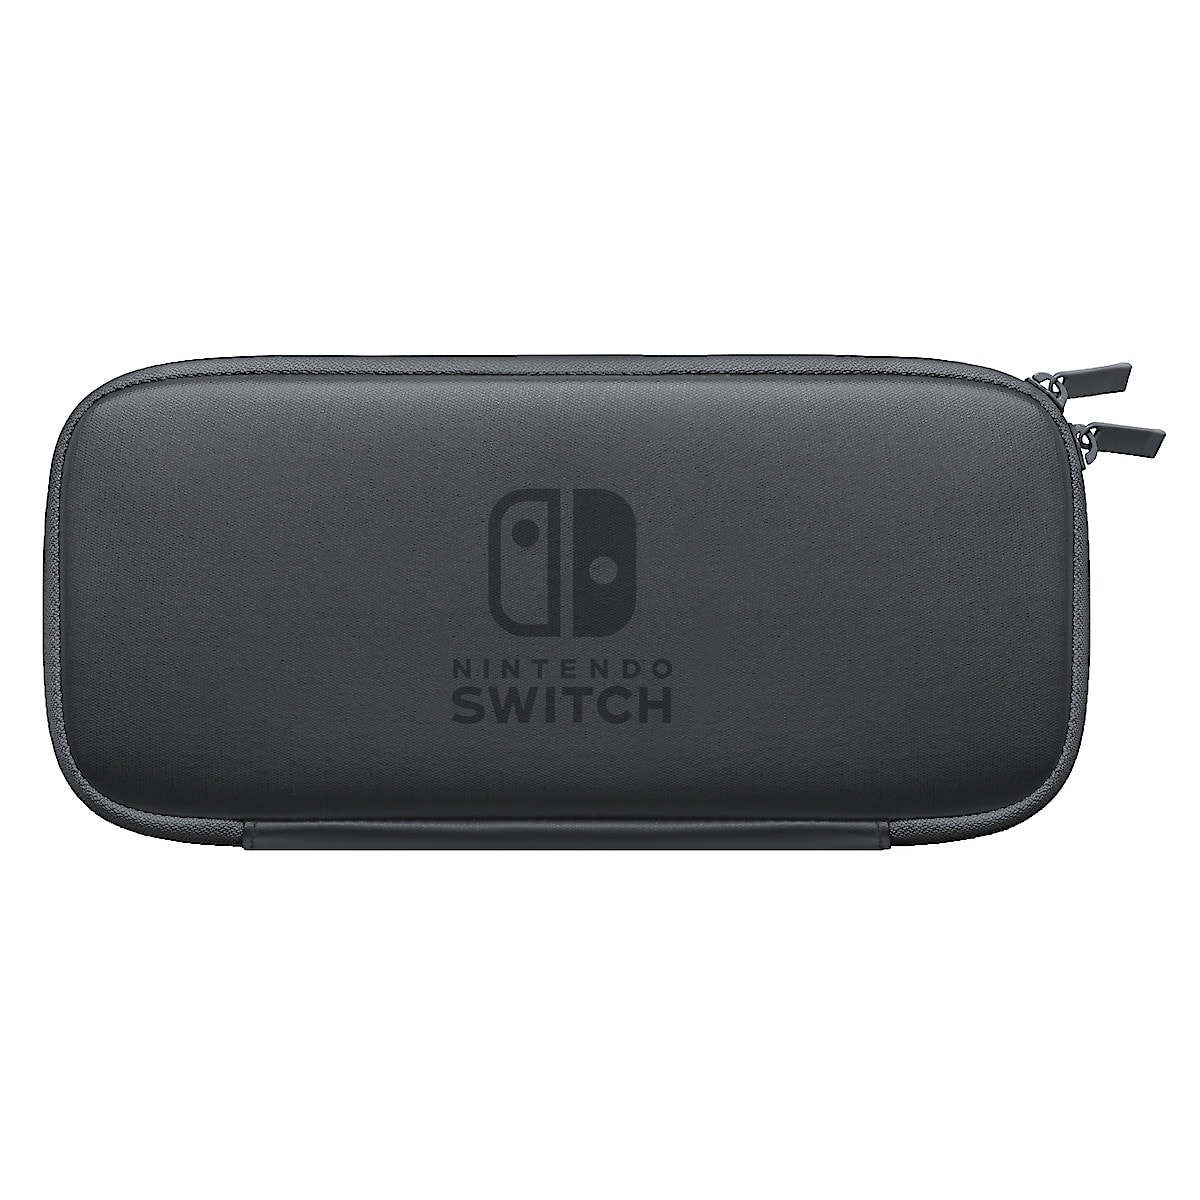 Nintendo Switch Carrying Case and Screen Protector